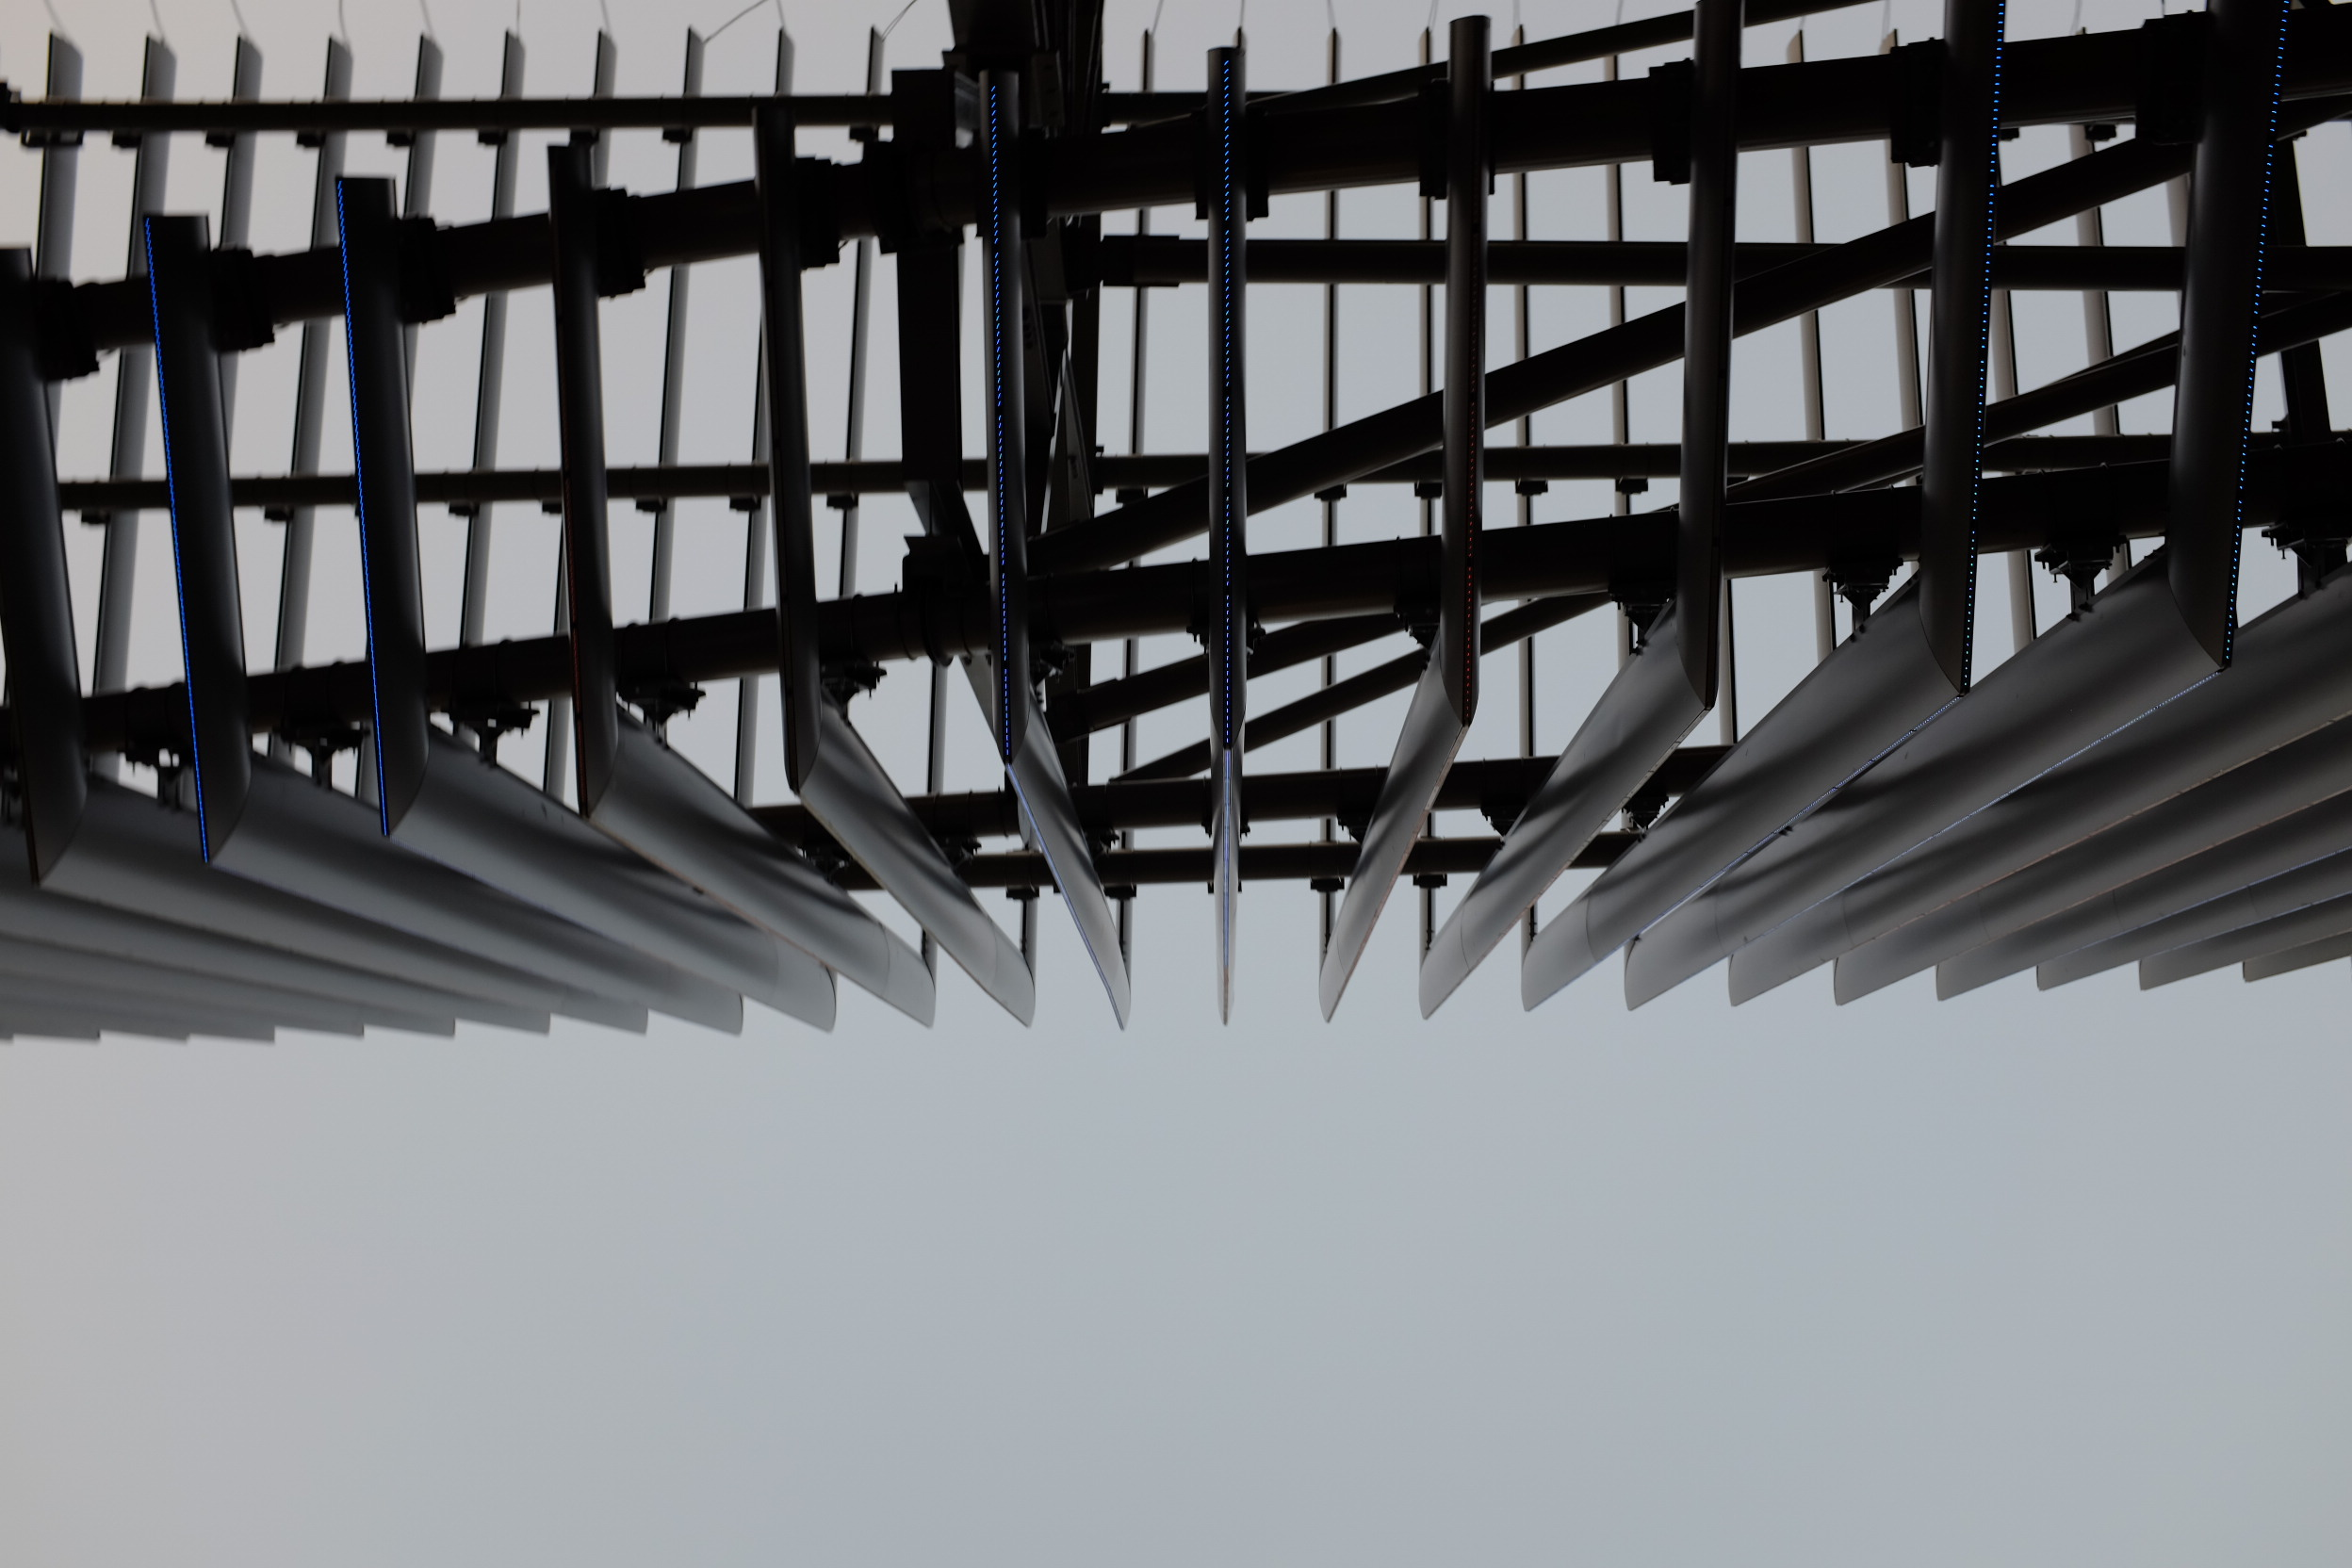 Looking up at LED fins on the outer structure of the stadium.